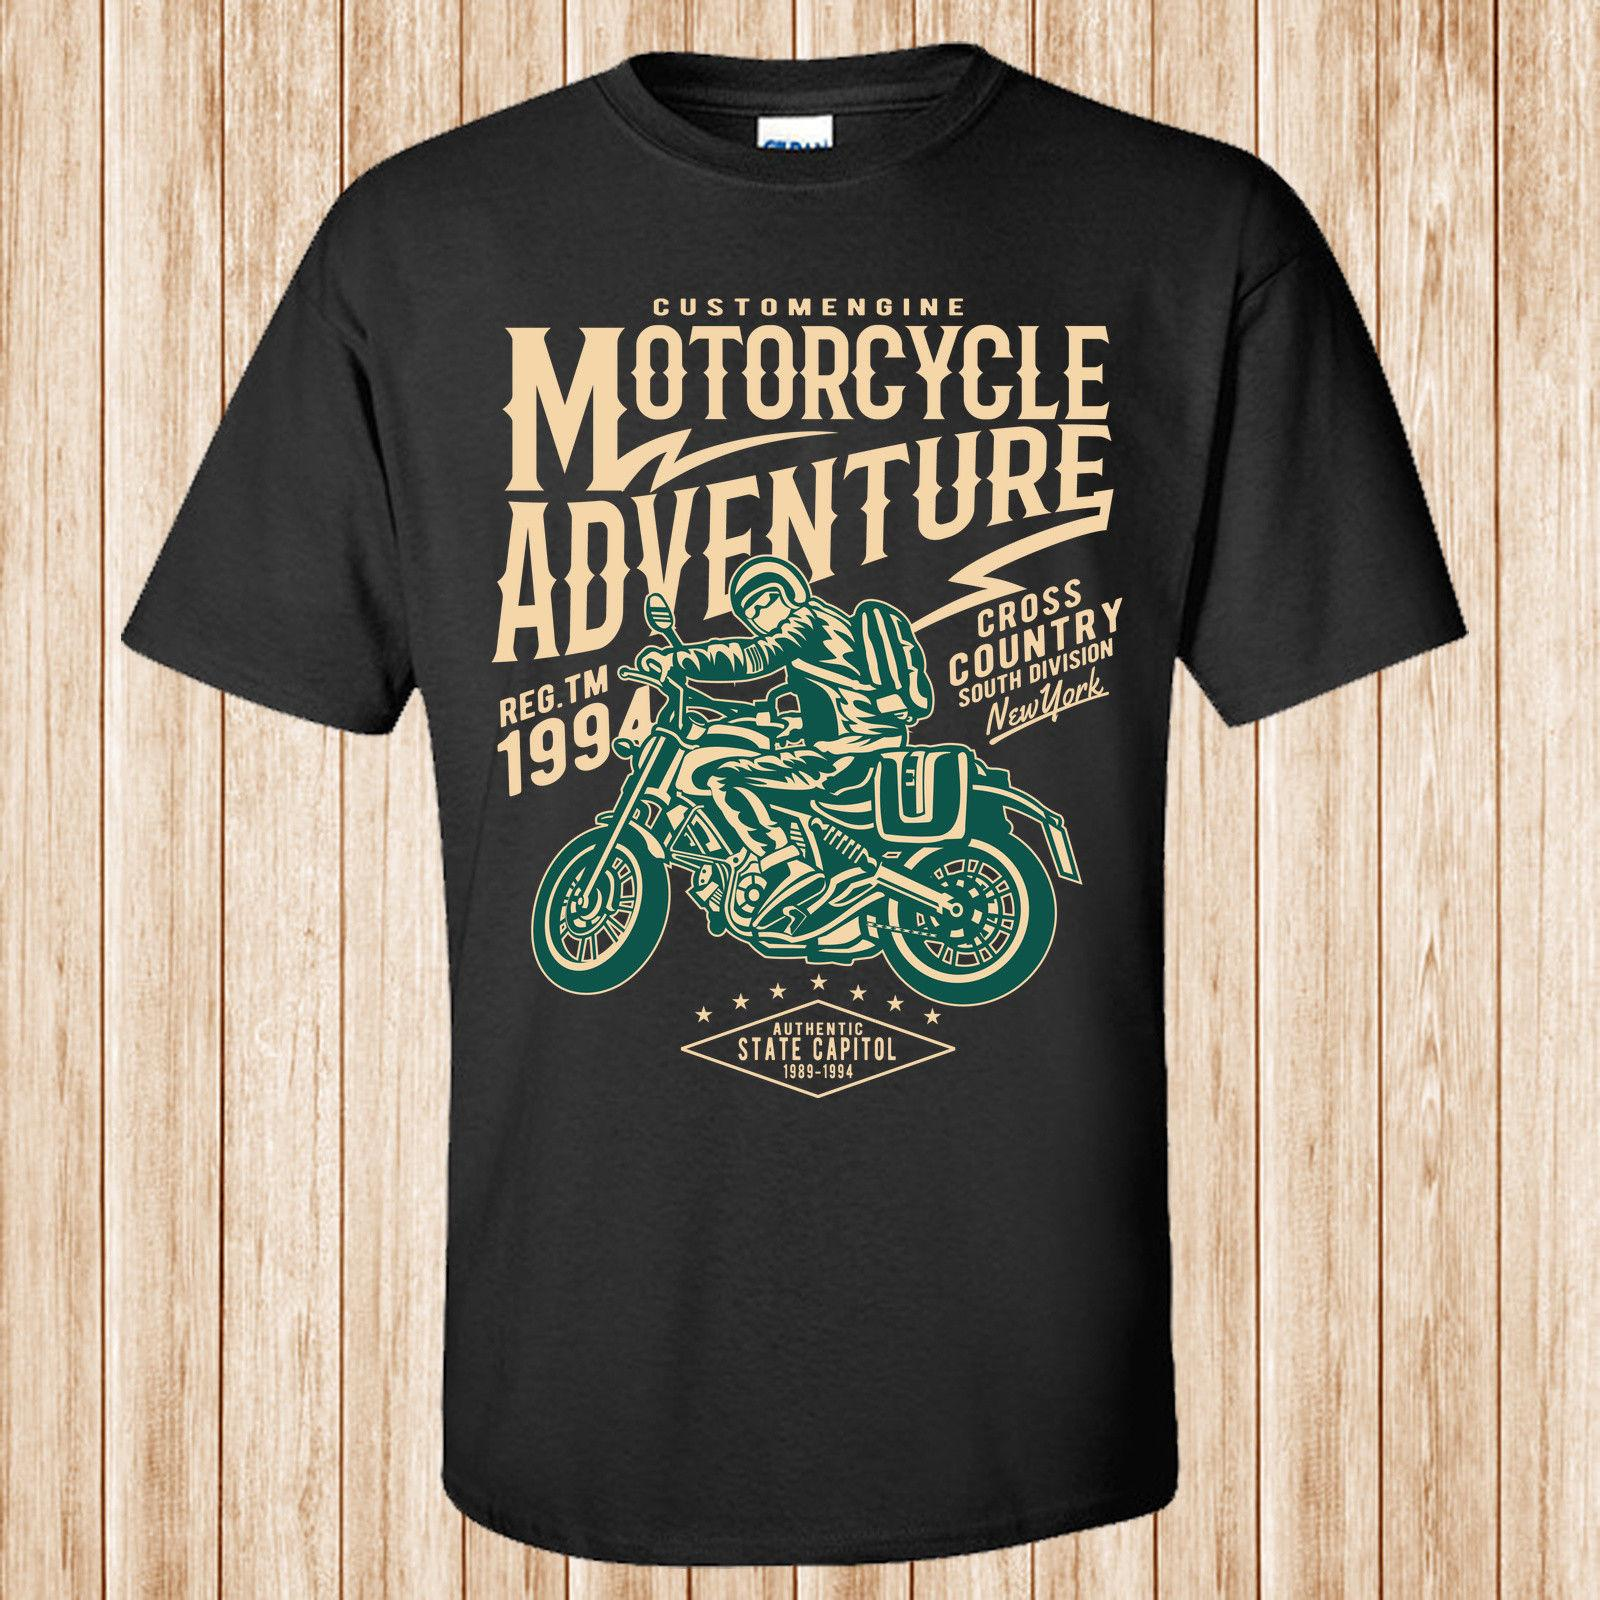 7f0b19b9ab78 Motorcycle Adventure T ShirtFunny Unisex Casual Tee Gift Printed Shirts  Design Shirts From Buttonitbadges, $10.28| DHgate.Com